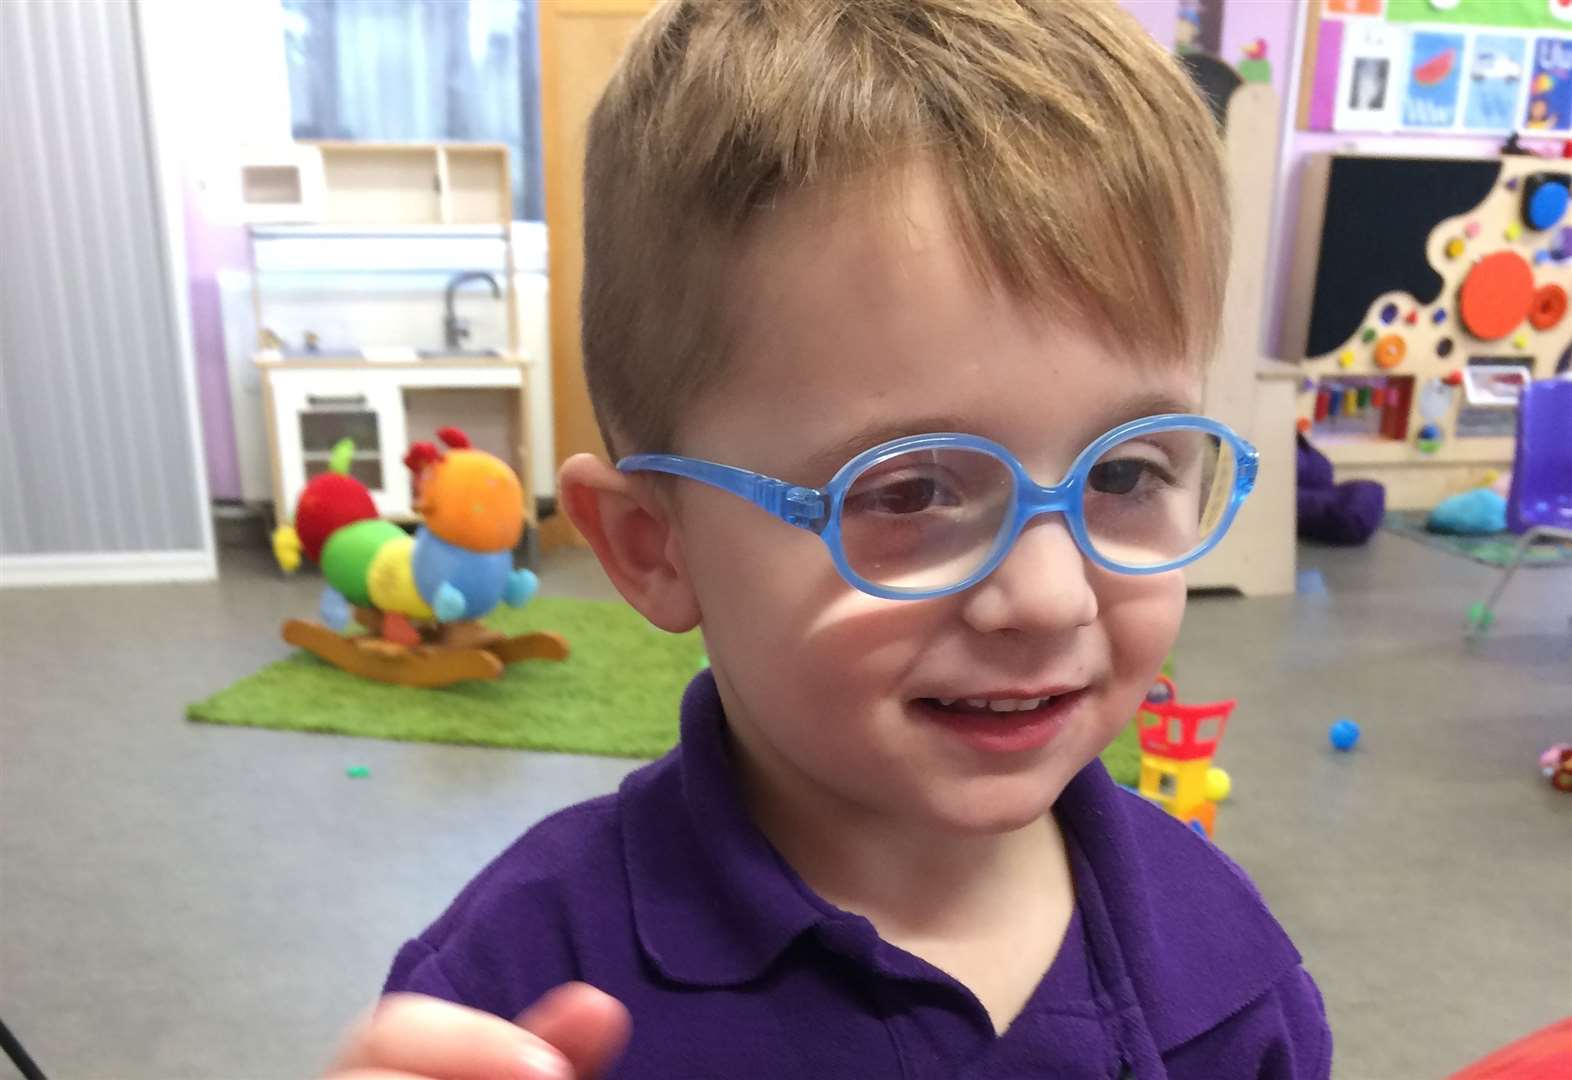 Grove Cottage has saved my four-year-old son from going blind